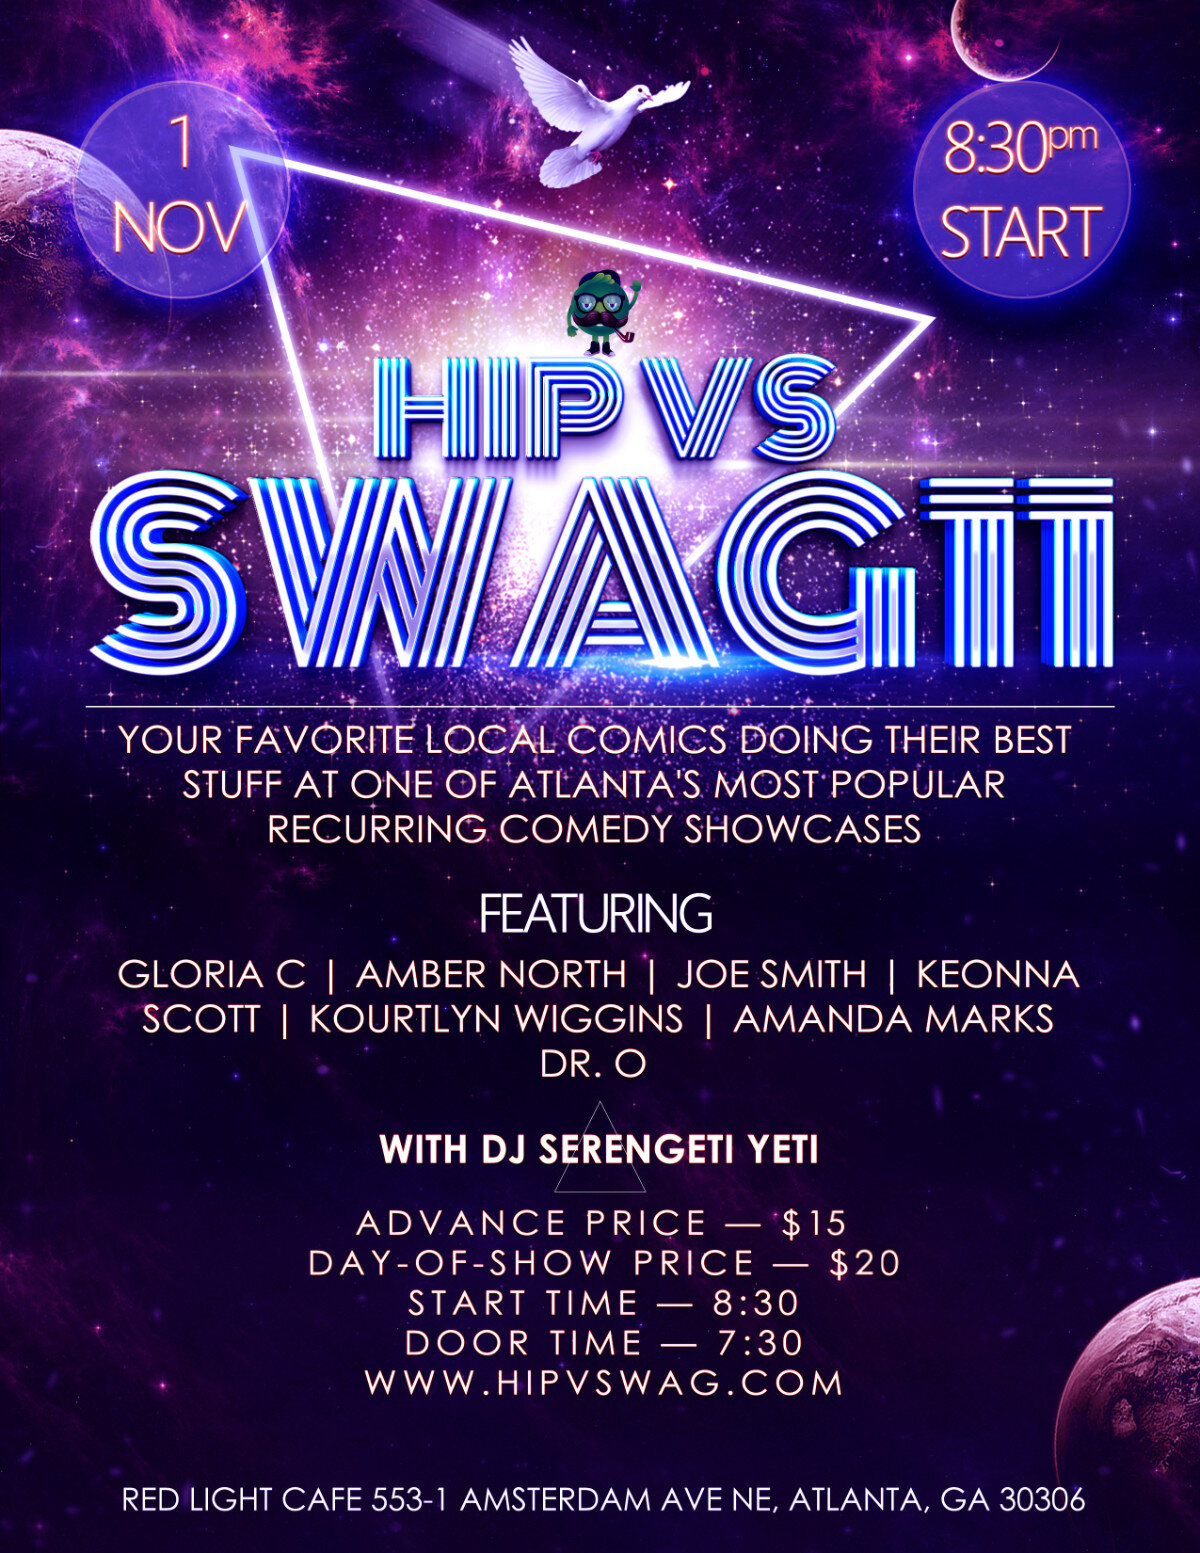 Hip v Swag 11 — November 1, 2019 — Red Light Café, Atlanta, GA